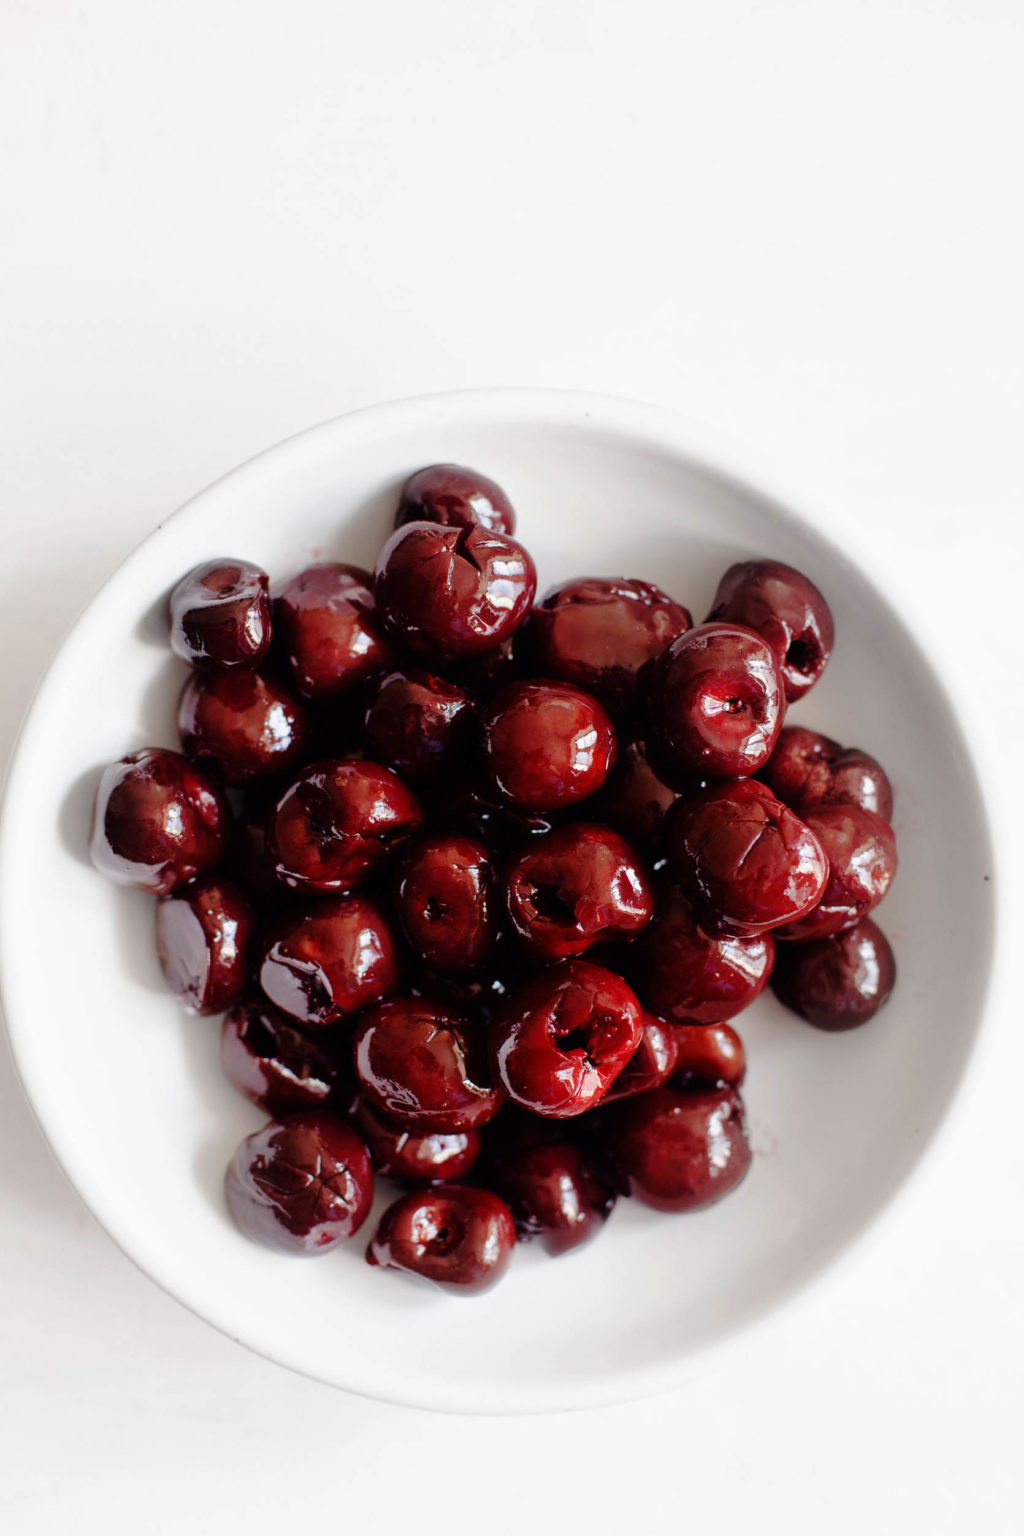 A bowl of plump and shiny dark, sweet cherries.